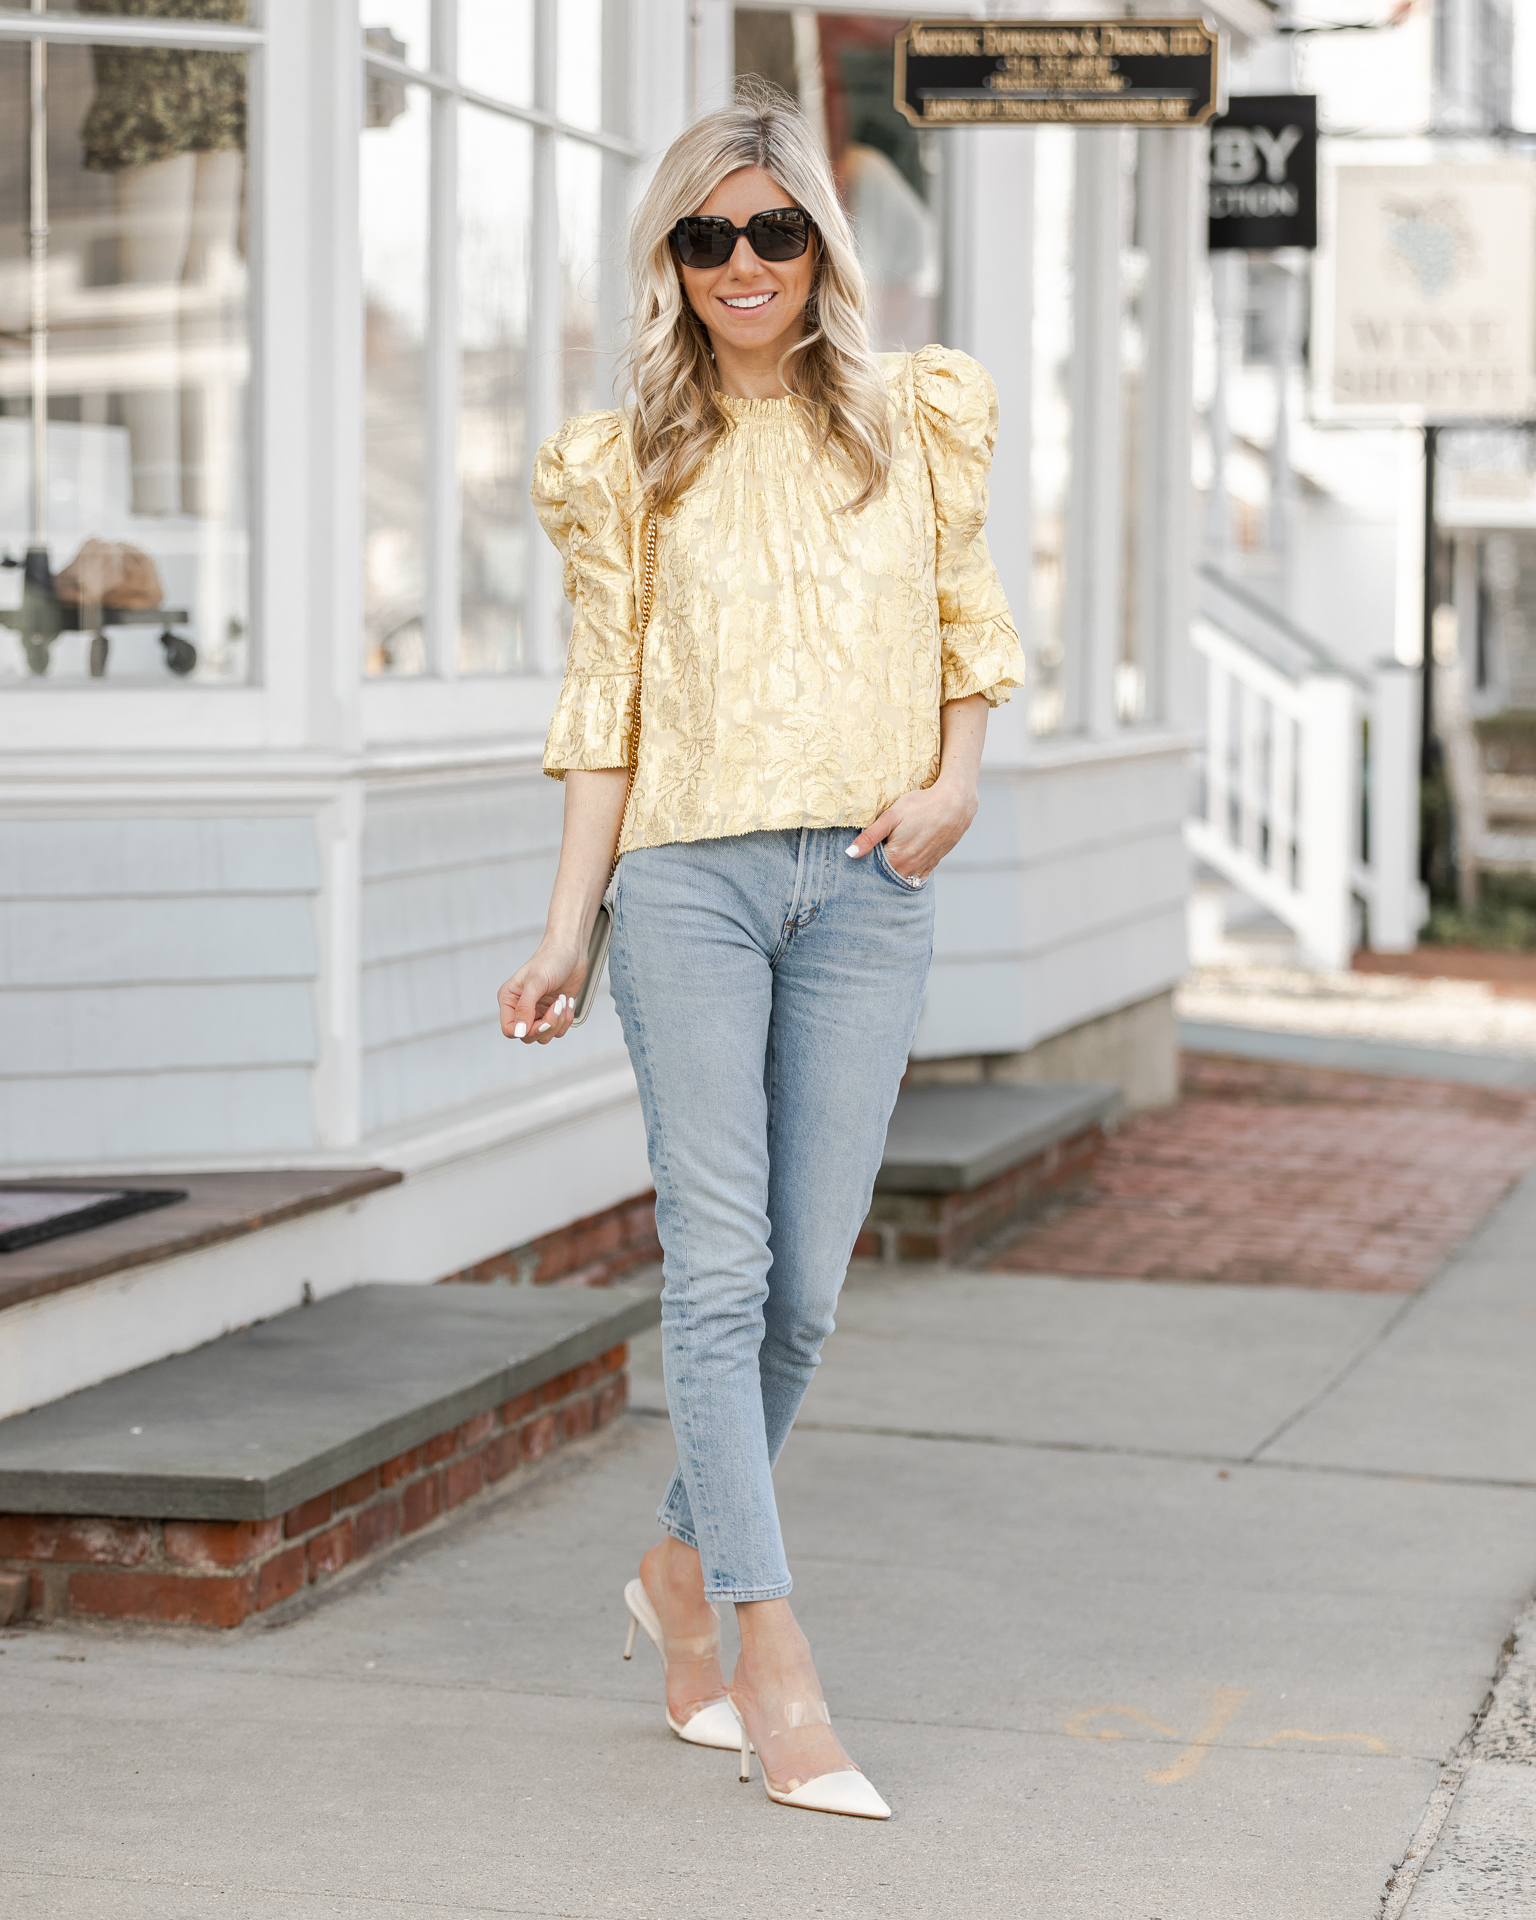 floral-metallic-puff-sleeve-top-the-glamorous-gal